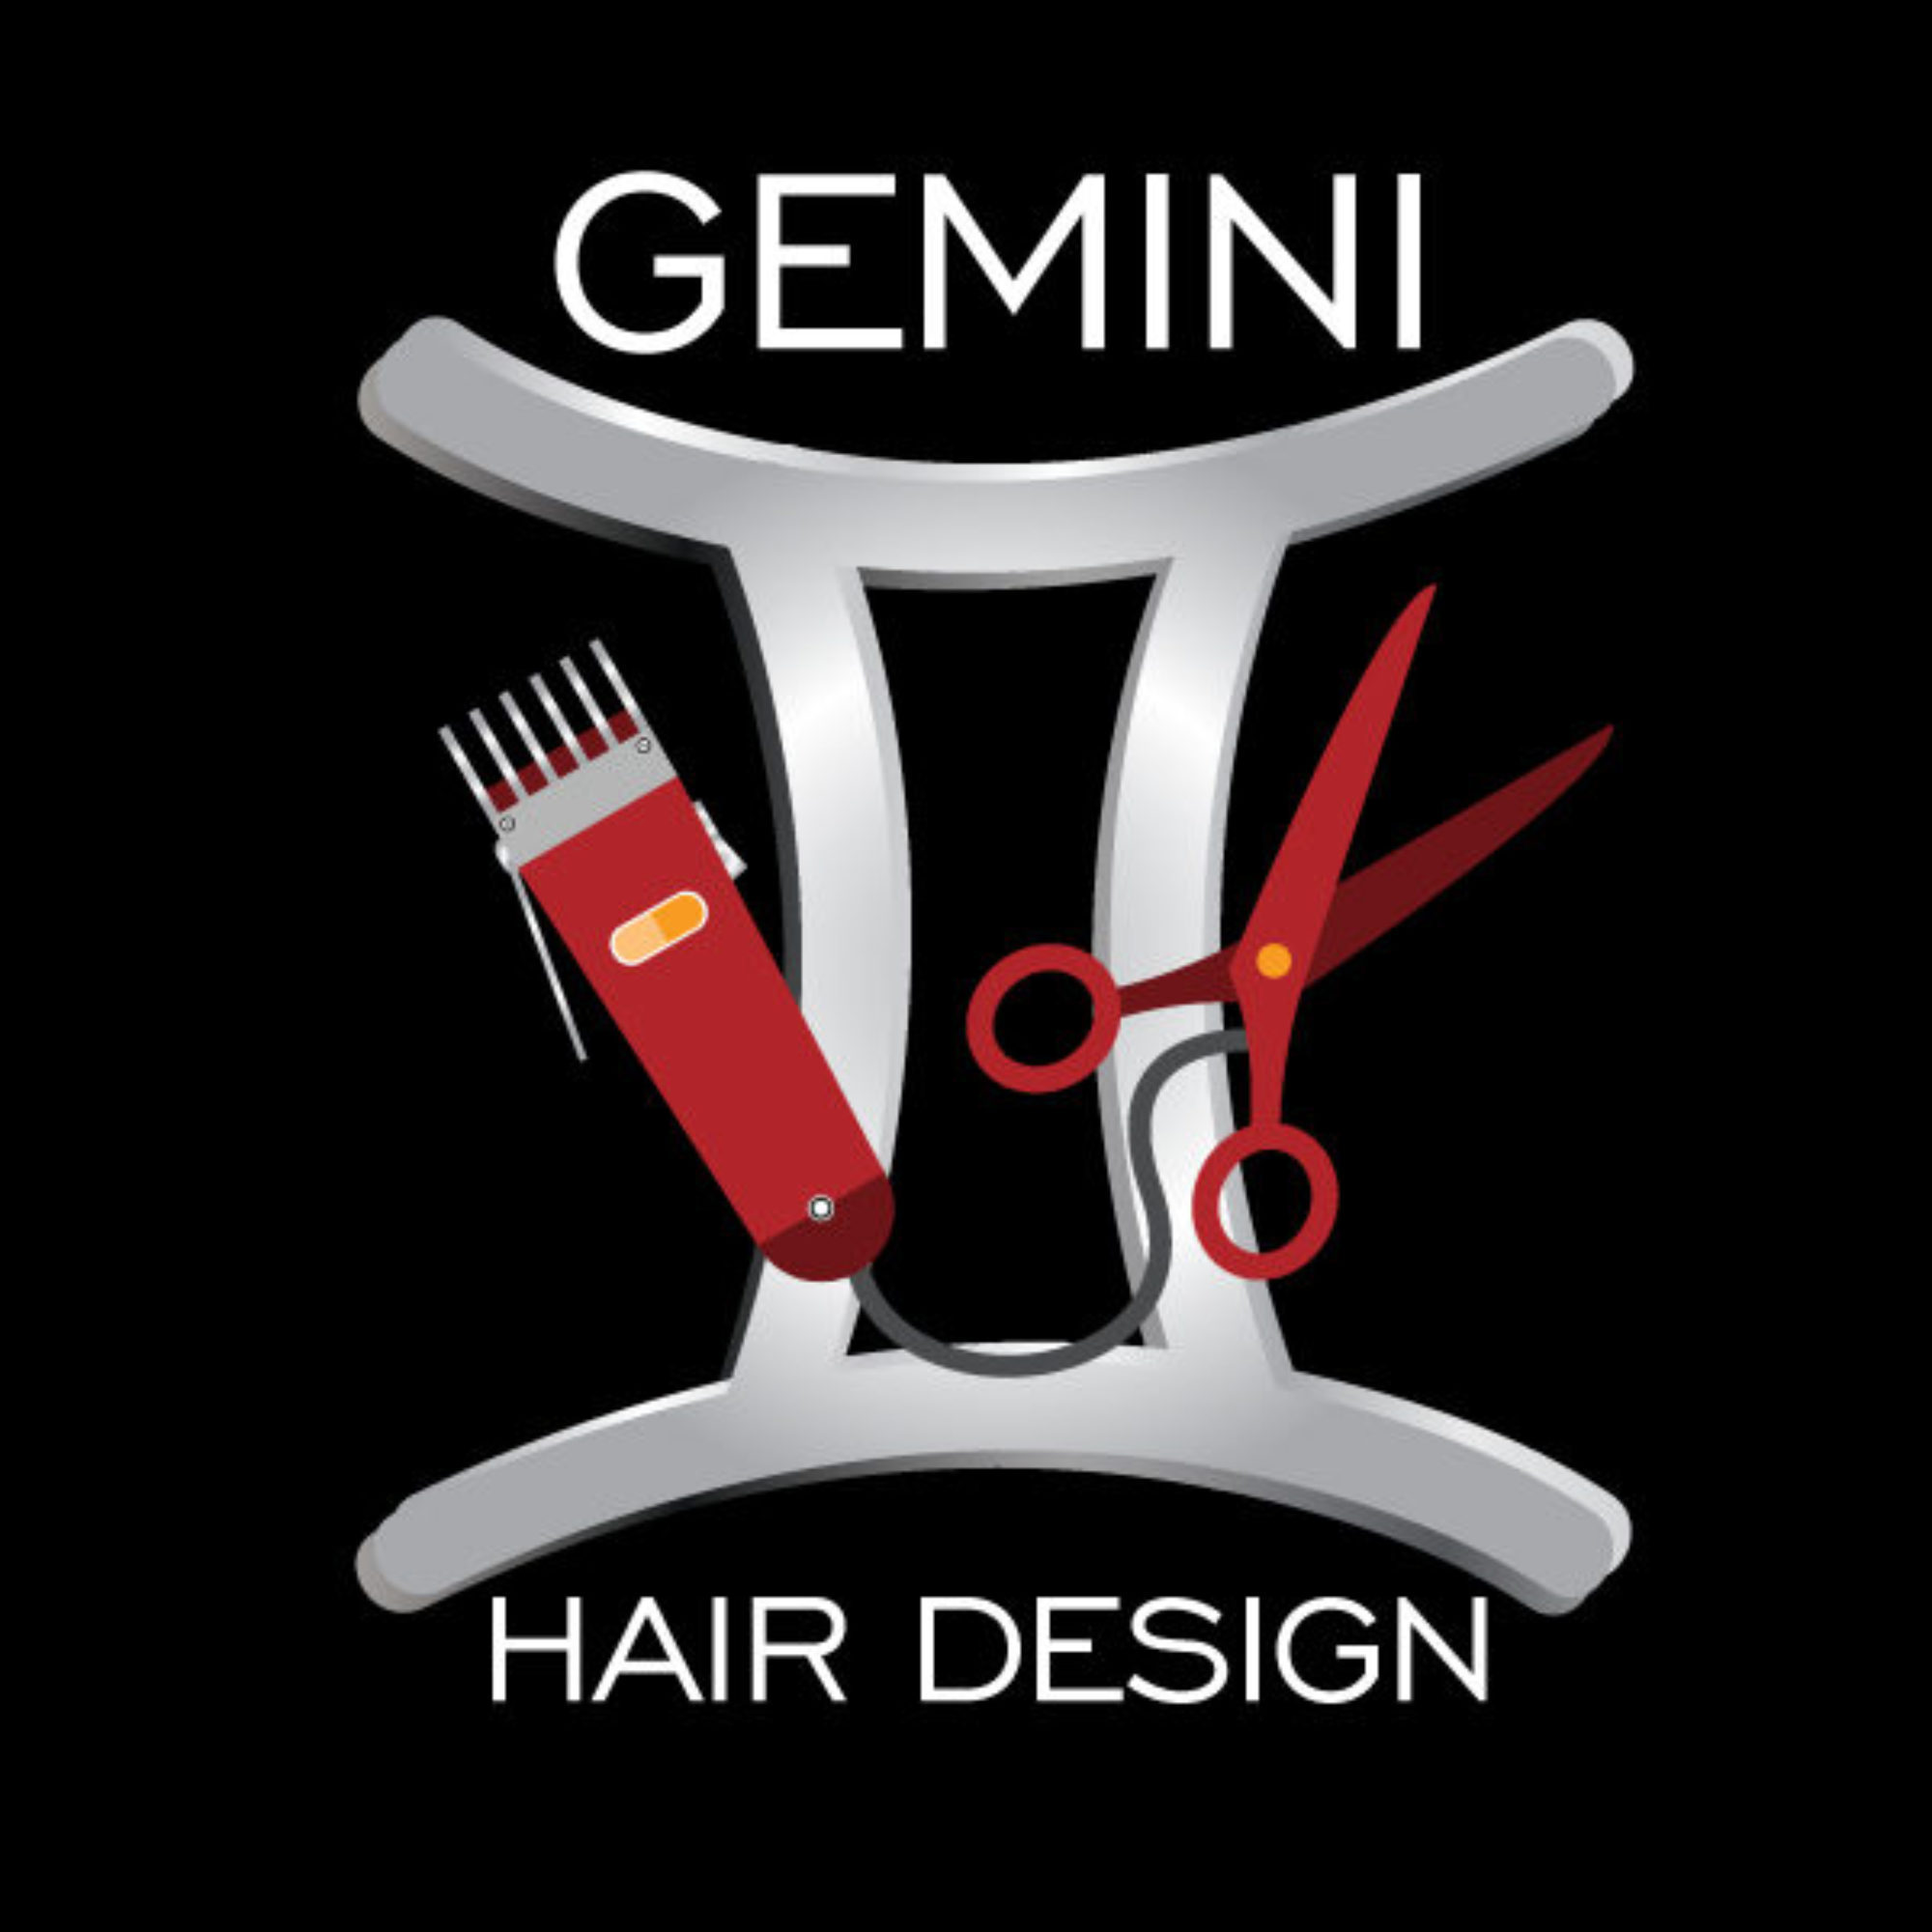 Gemini Hair Design